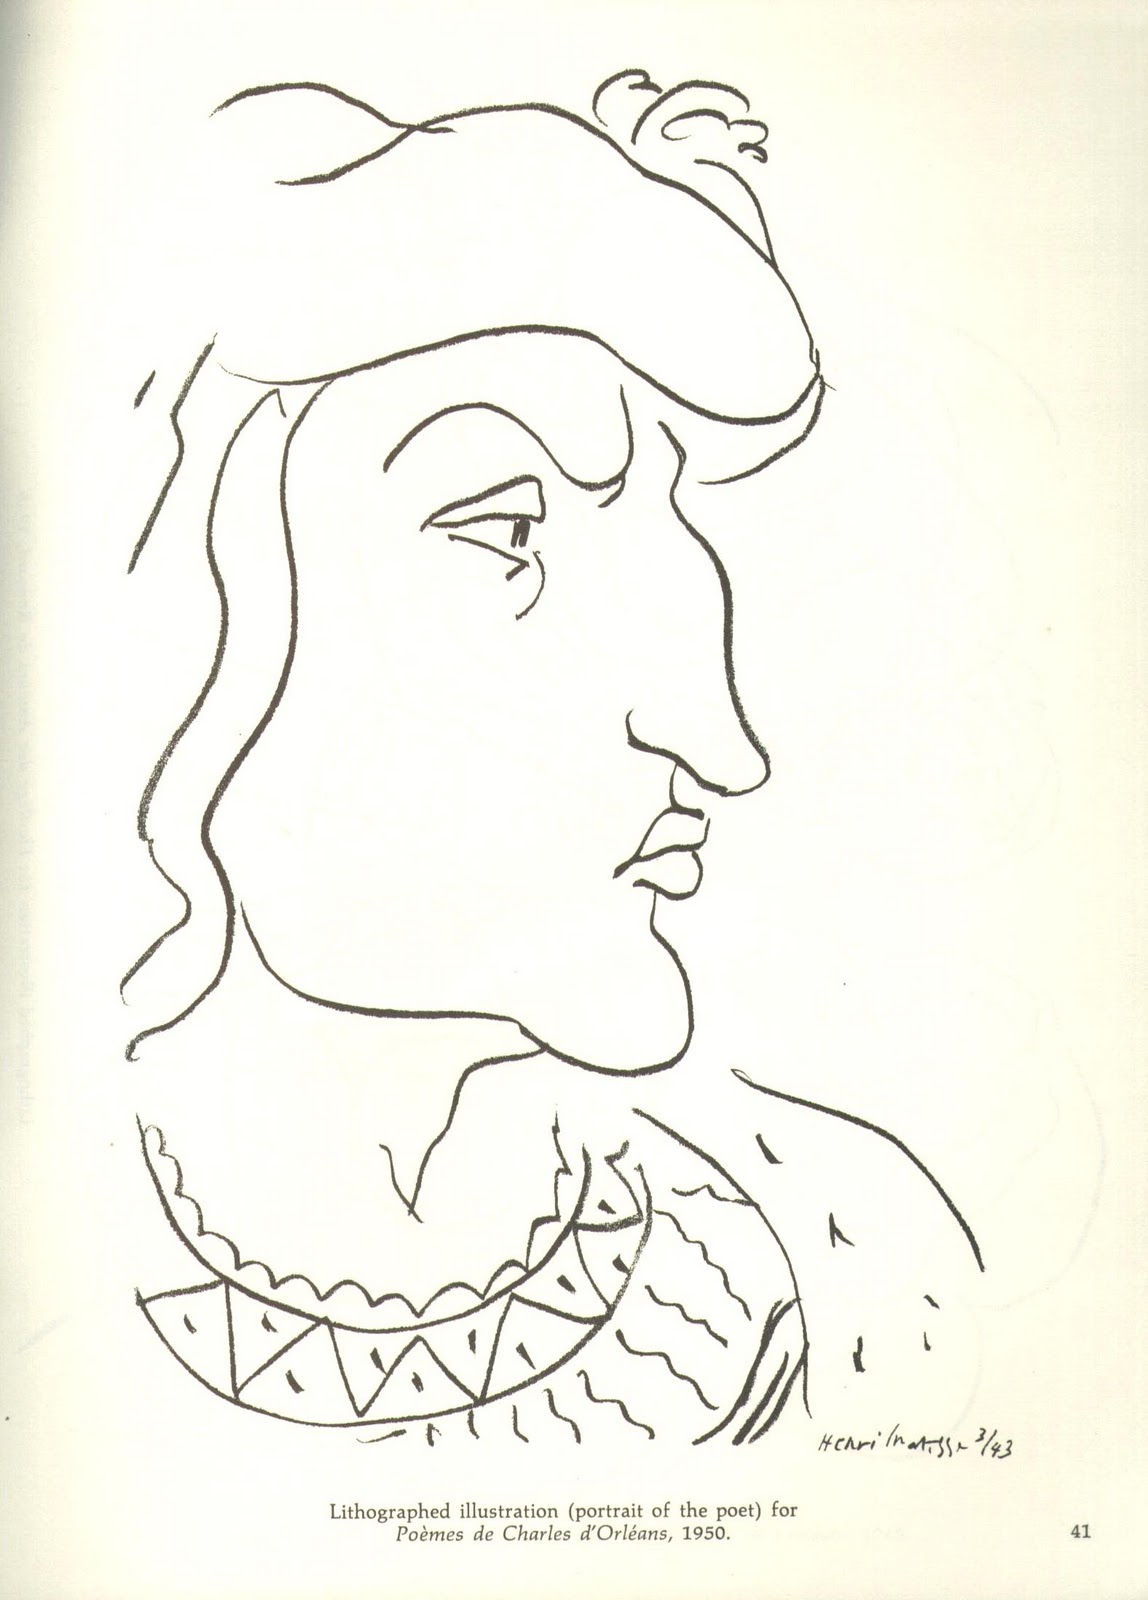 Matisse Contour Line Drawing : Un rincón sombra matisse line drawing and prints